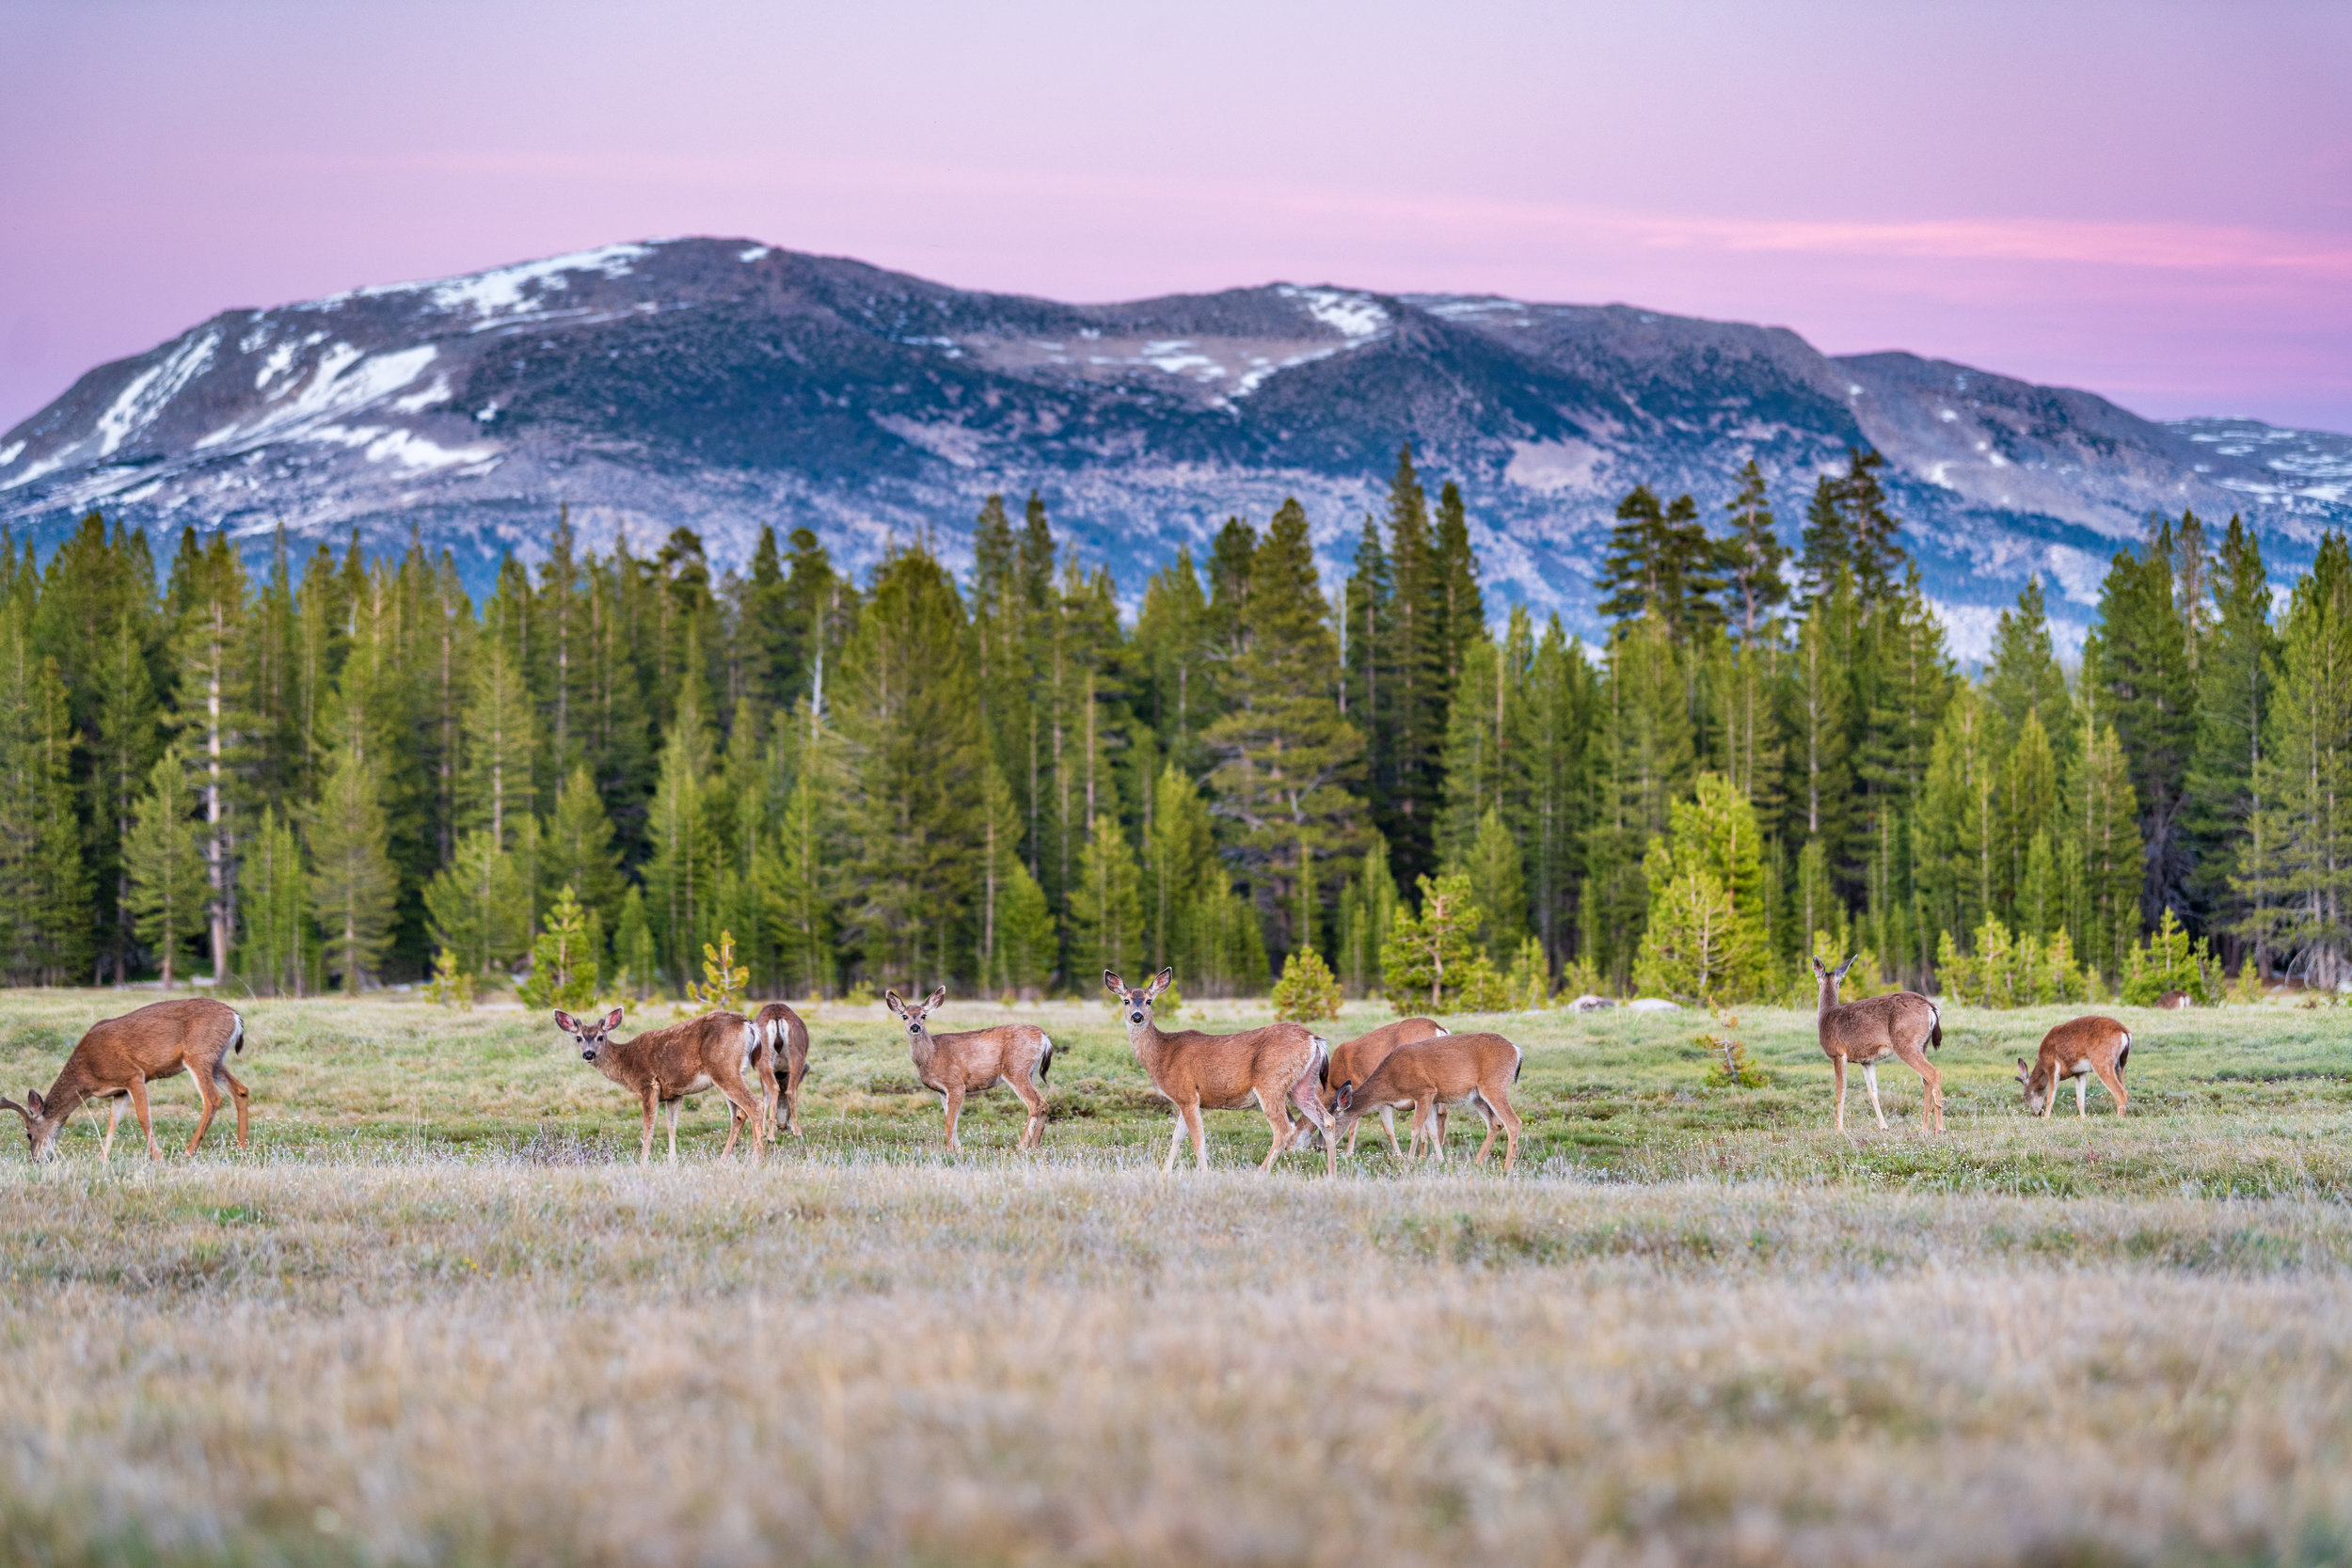 Herd of deer at Tuolumne Meadows